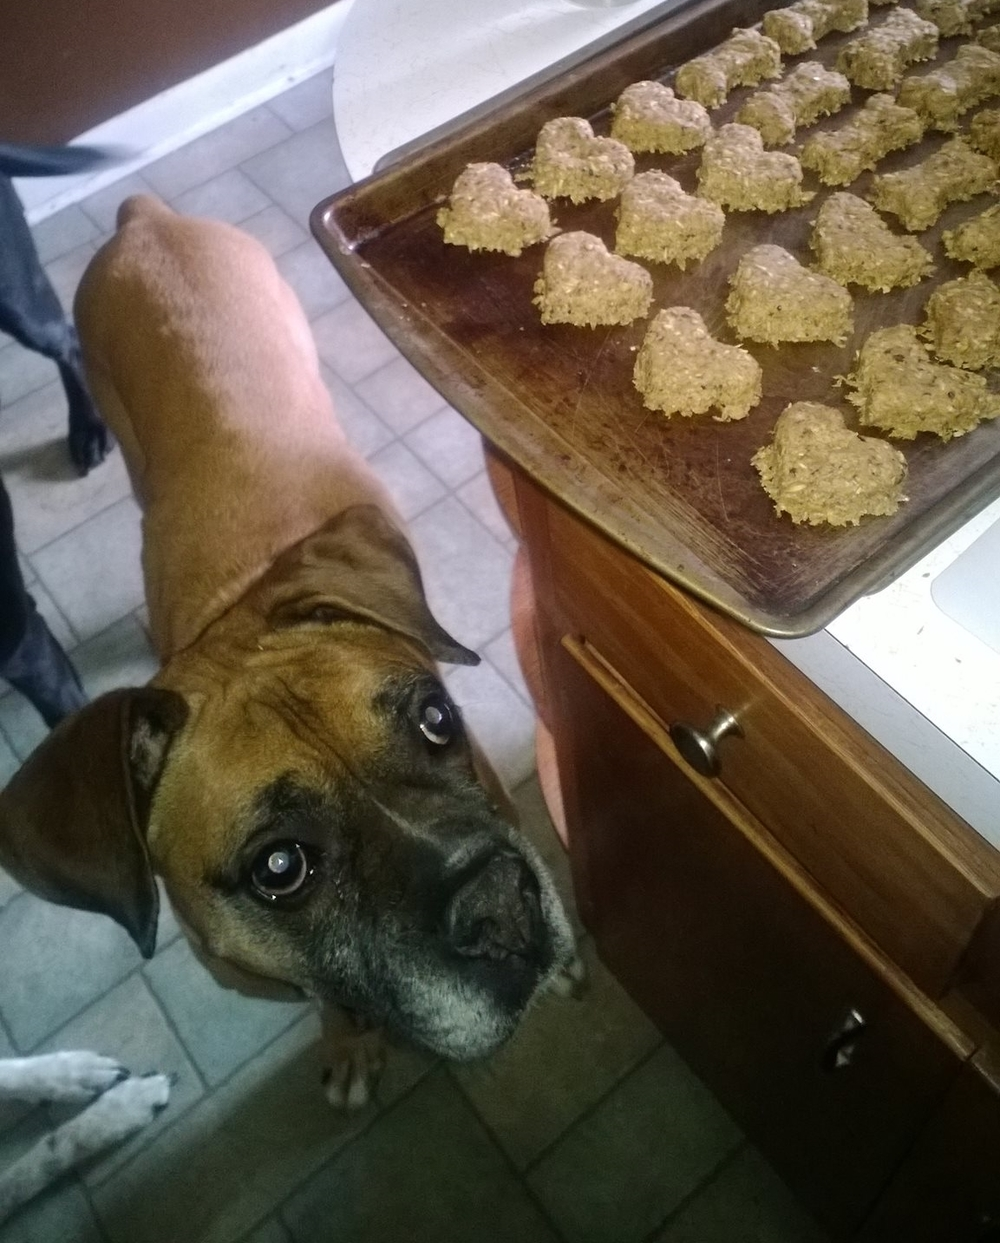 Buster waiting as patiently as possible for the treats to cool. He insists I make his treats in the shapes of hearts and bones in honor of his favorite Paul Simon song.